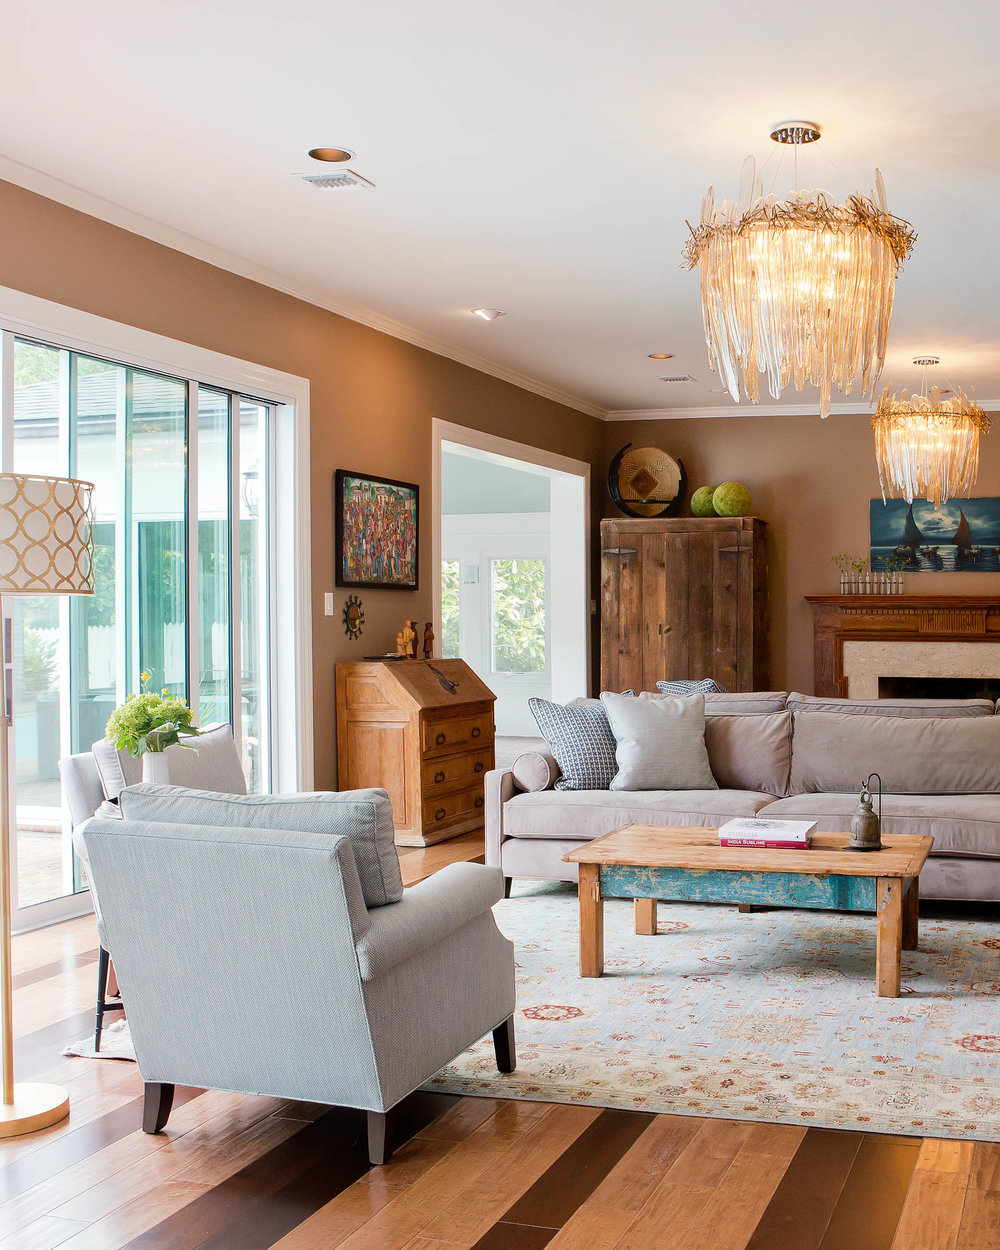 Traditional rug in warm toned living room. Two chandeliers and large windows bring light into the transitional space.